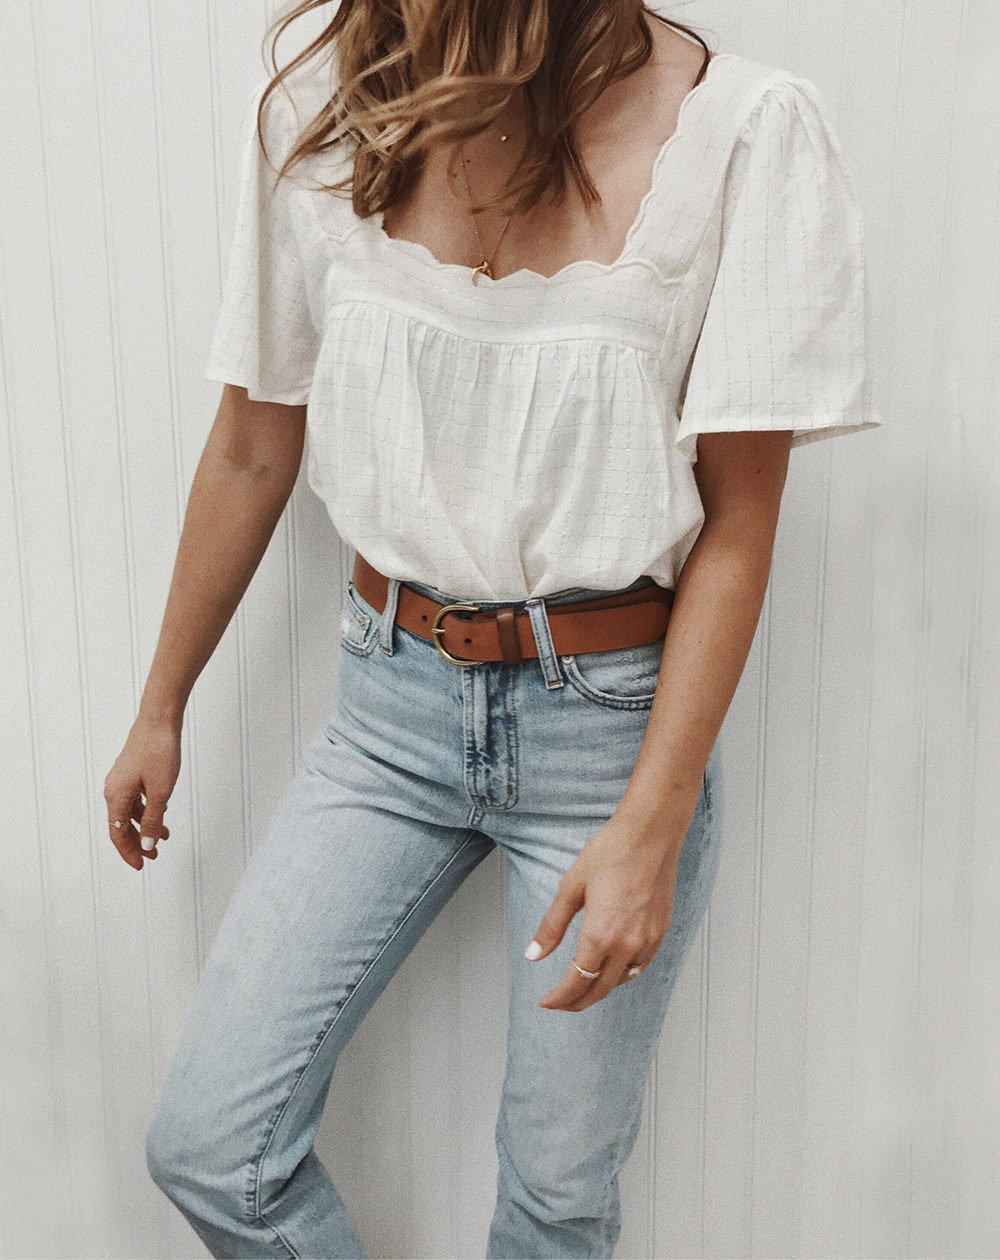 livvyland-blog-olivia-watson-white-scalloped-top-tucked-in-high-rise-jeans-brown-belt-sezane-outfit-classic